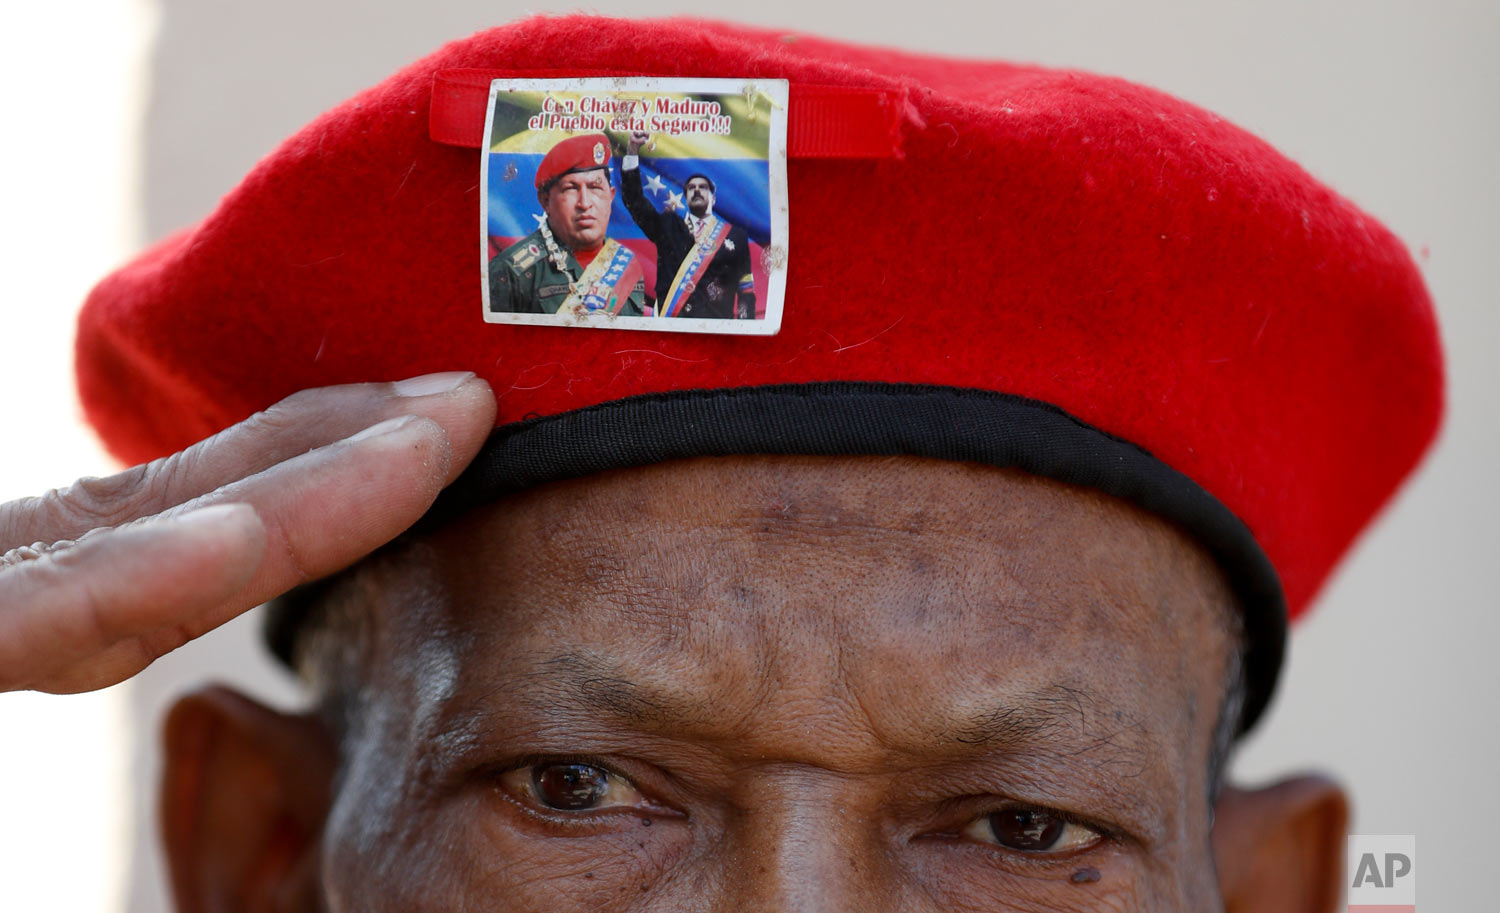 In this March 5, 2019 photo, a man wearing the iconic red beret of Venezuela's late President Hugo Chavez, featuring a photo of current President Nicolas Maduro with Chavez, salutes as he waits to enter the Historic Military Museum to visit the leader's remains on the sixth anniversary of his death in Caracas, Venezuela. (AP Photo/Eduardo Verdugo)